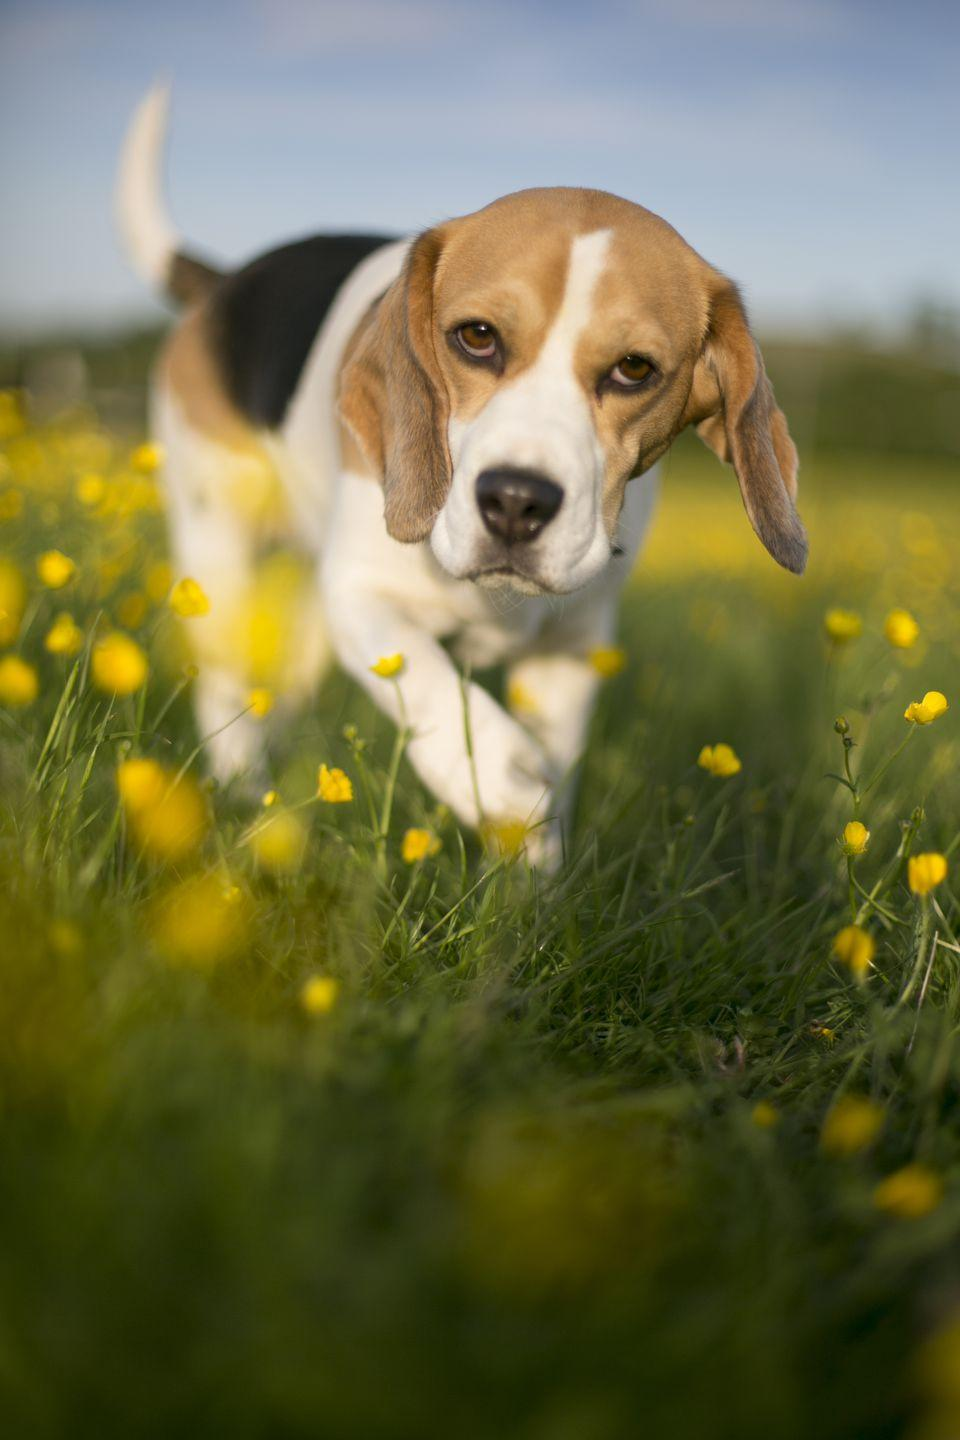 Adorable Dog Breeds You Need in Your Life